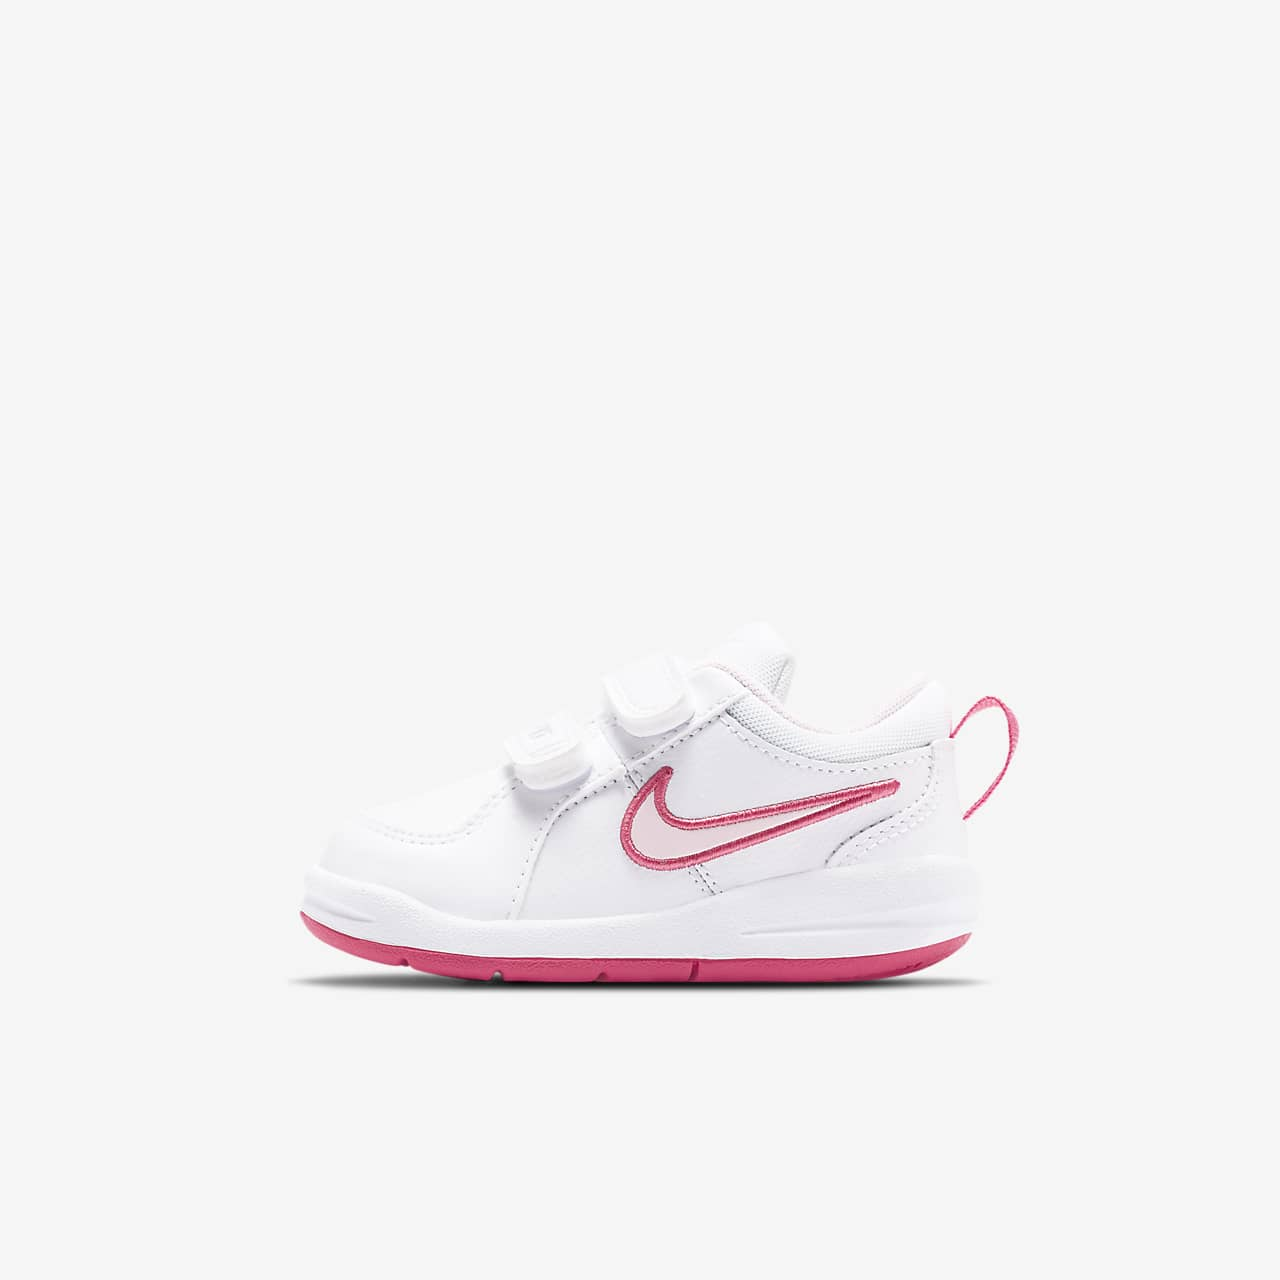 Nike Pico 4 (1.5–9.5) Baby and Toddler Girls' Shoe